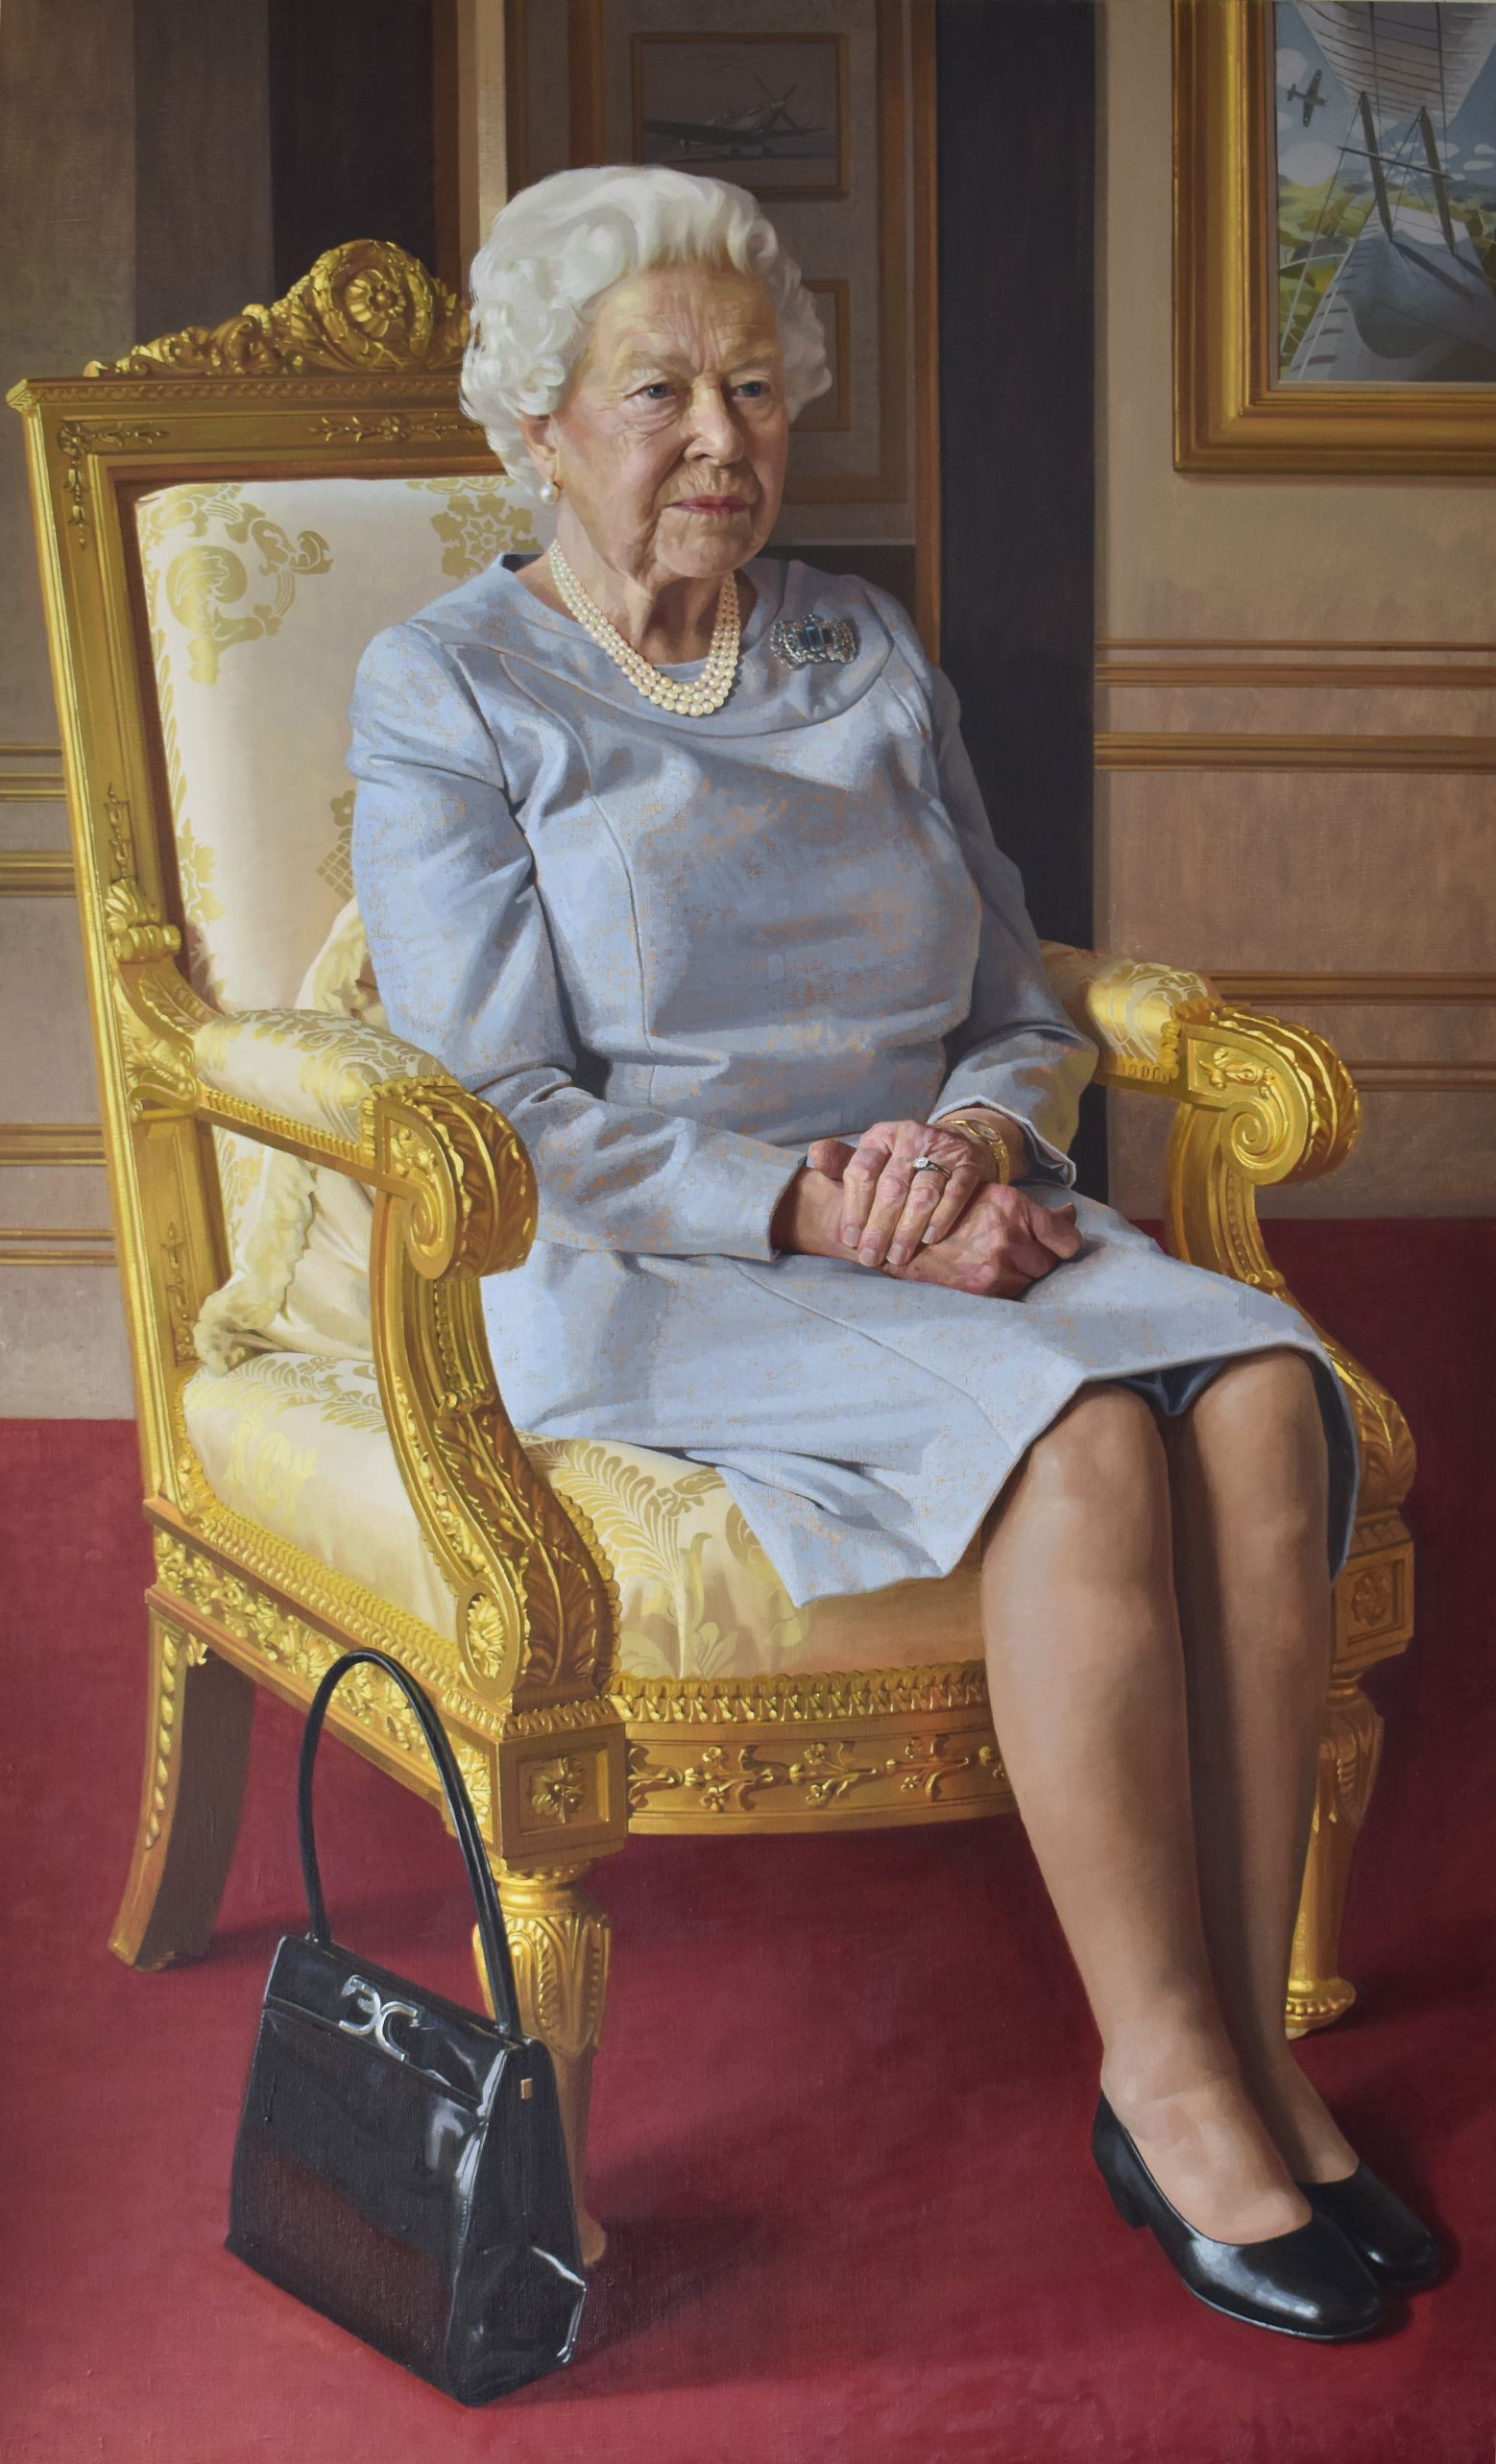 portrait of The Queen by Benjamin Sullivan